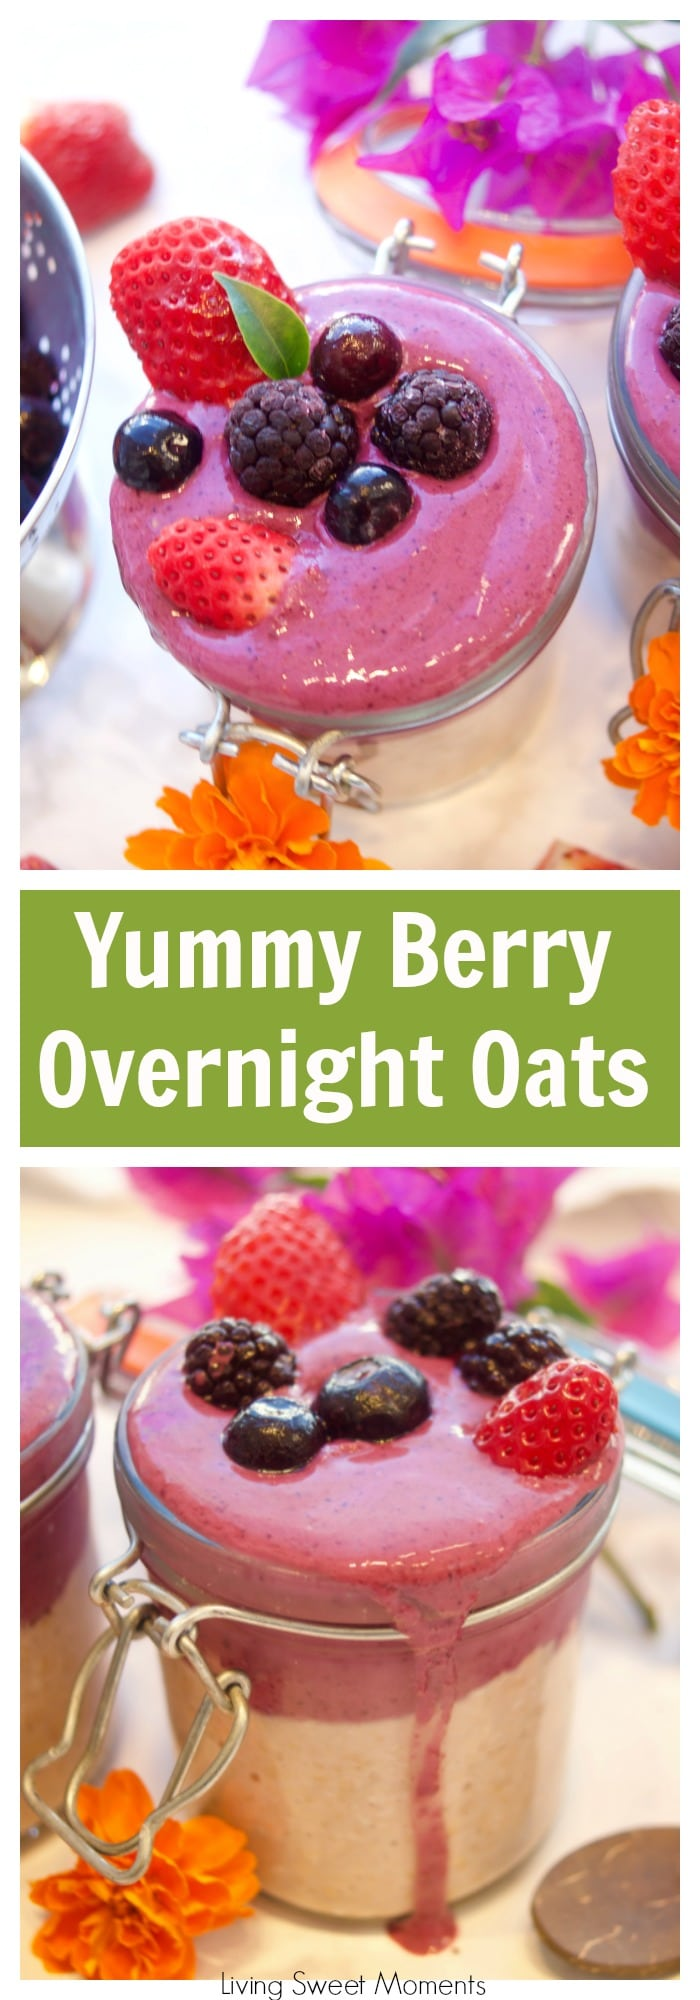 This delicious strawberry overnight oats is topped with a frosty berry smoothie. Enjoy a quick and healthy breakfast idea that will keep you going all morning. More delicius breakfast recipes at livingsweetmoments.com #ad